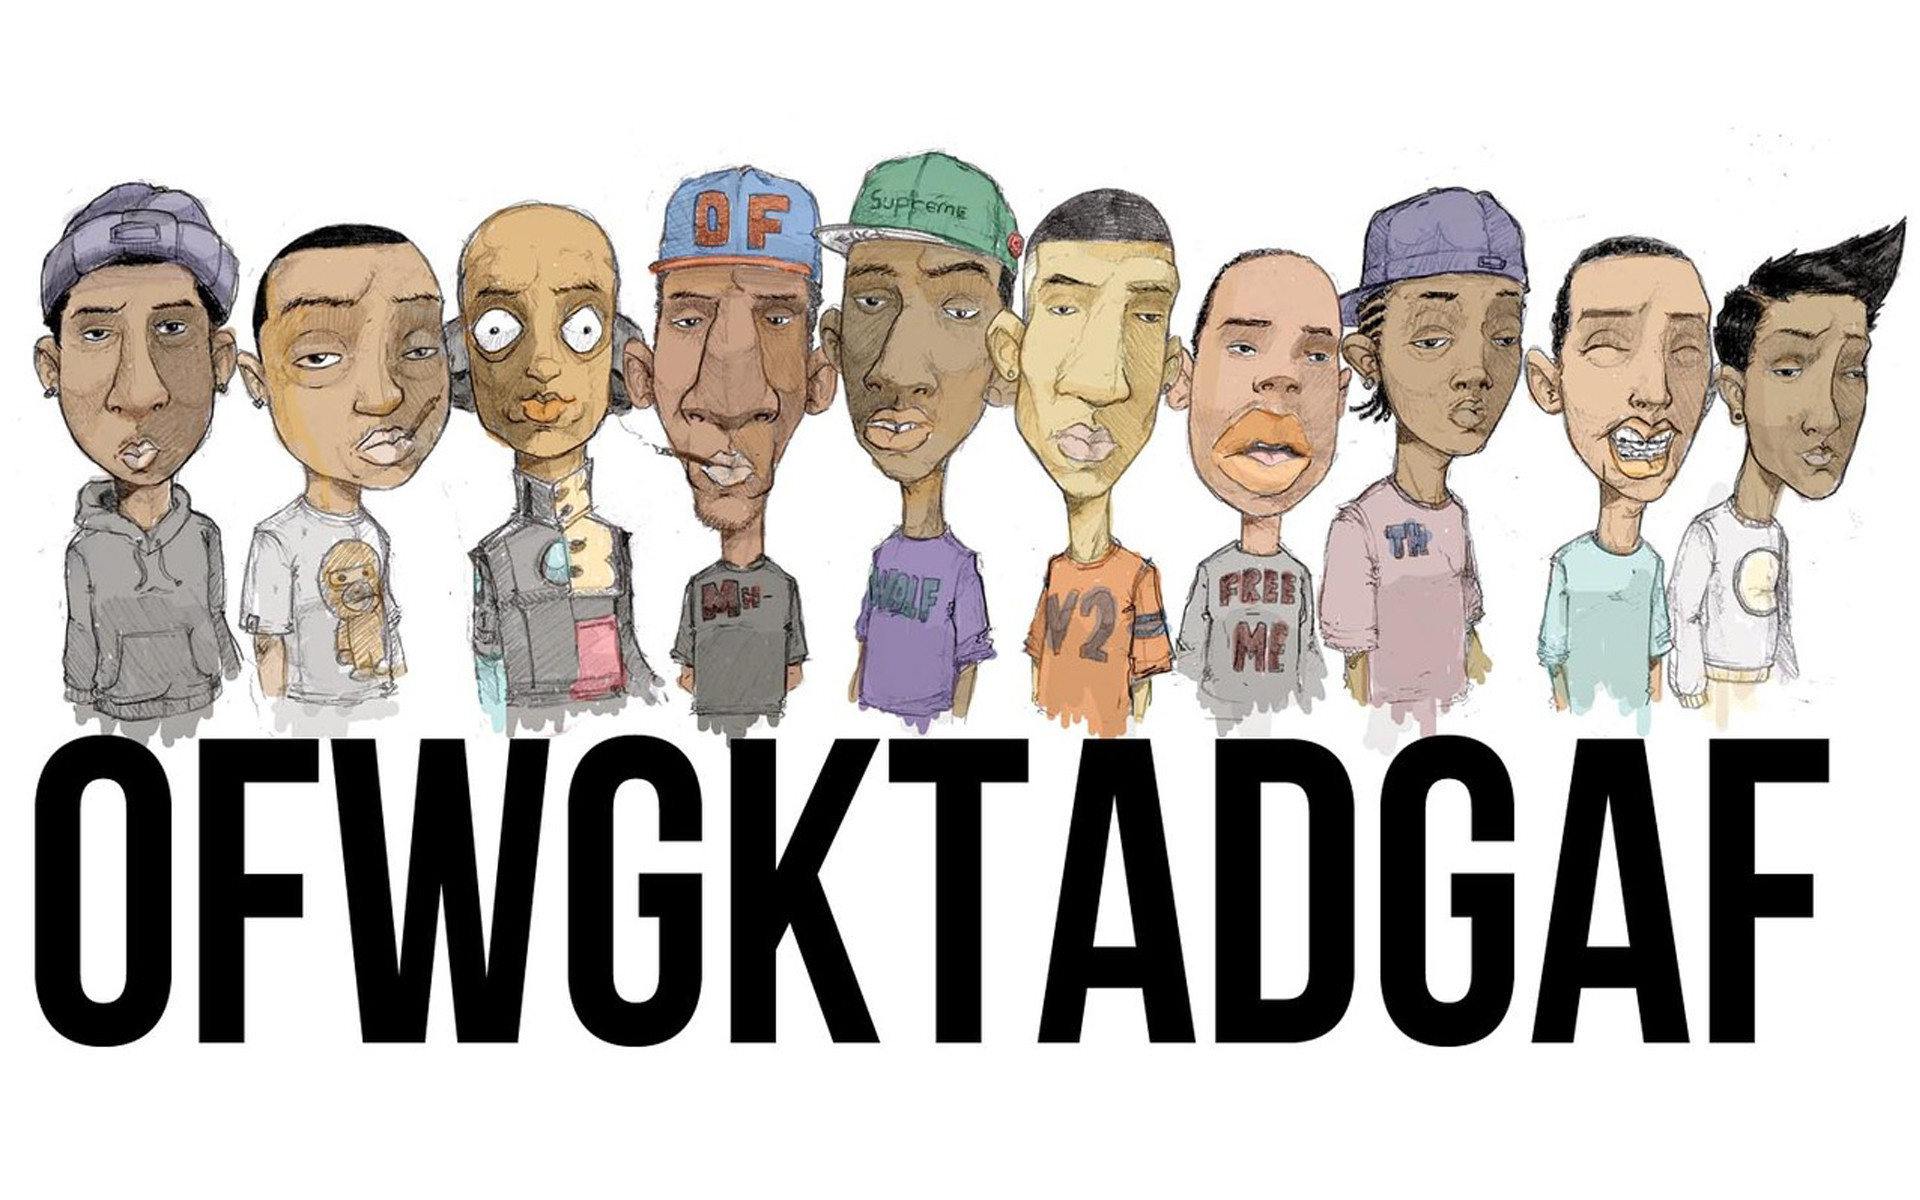 odd future wallpaper hd 1920×1200 for lockscreen desktop